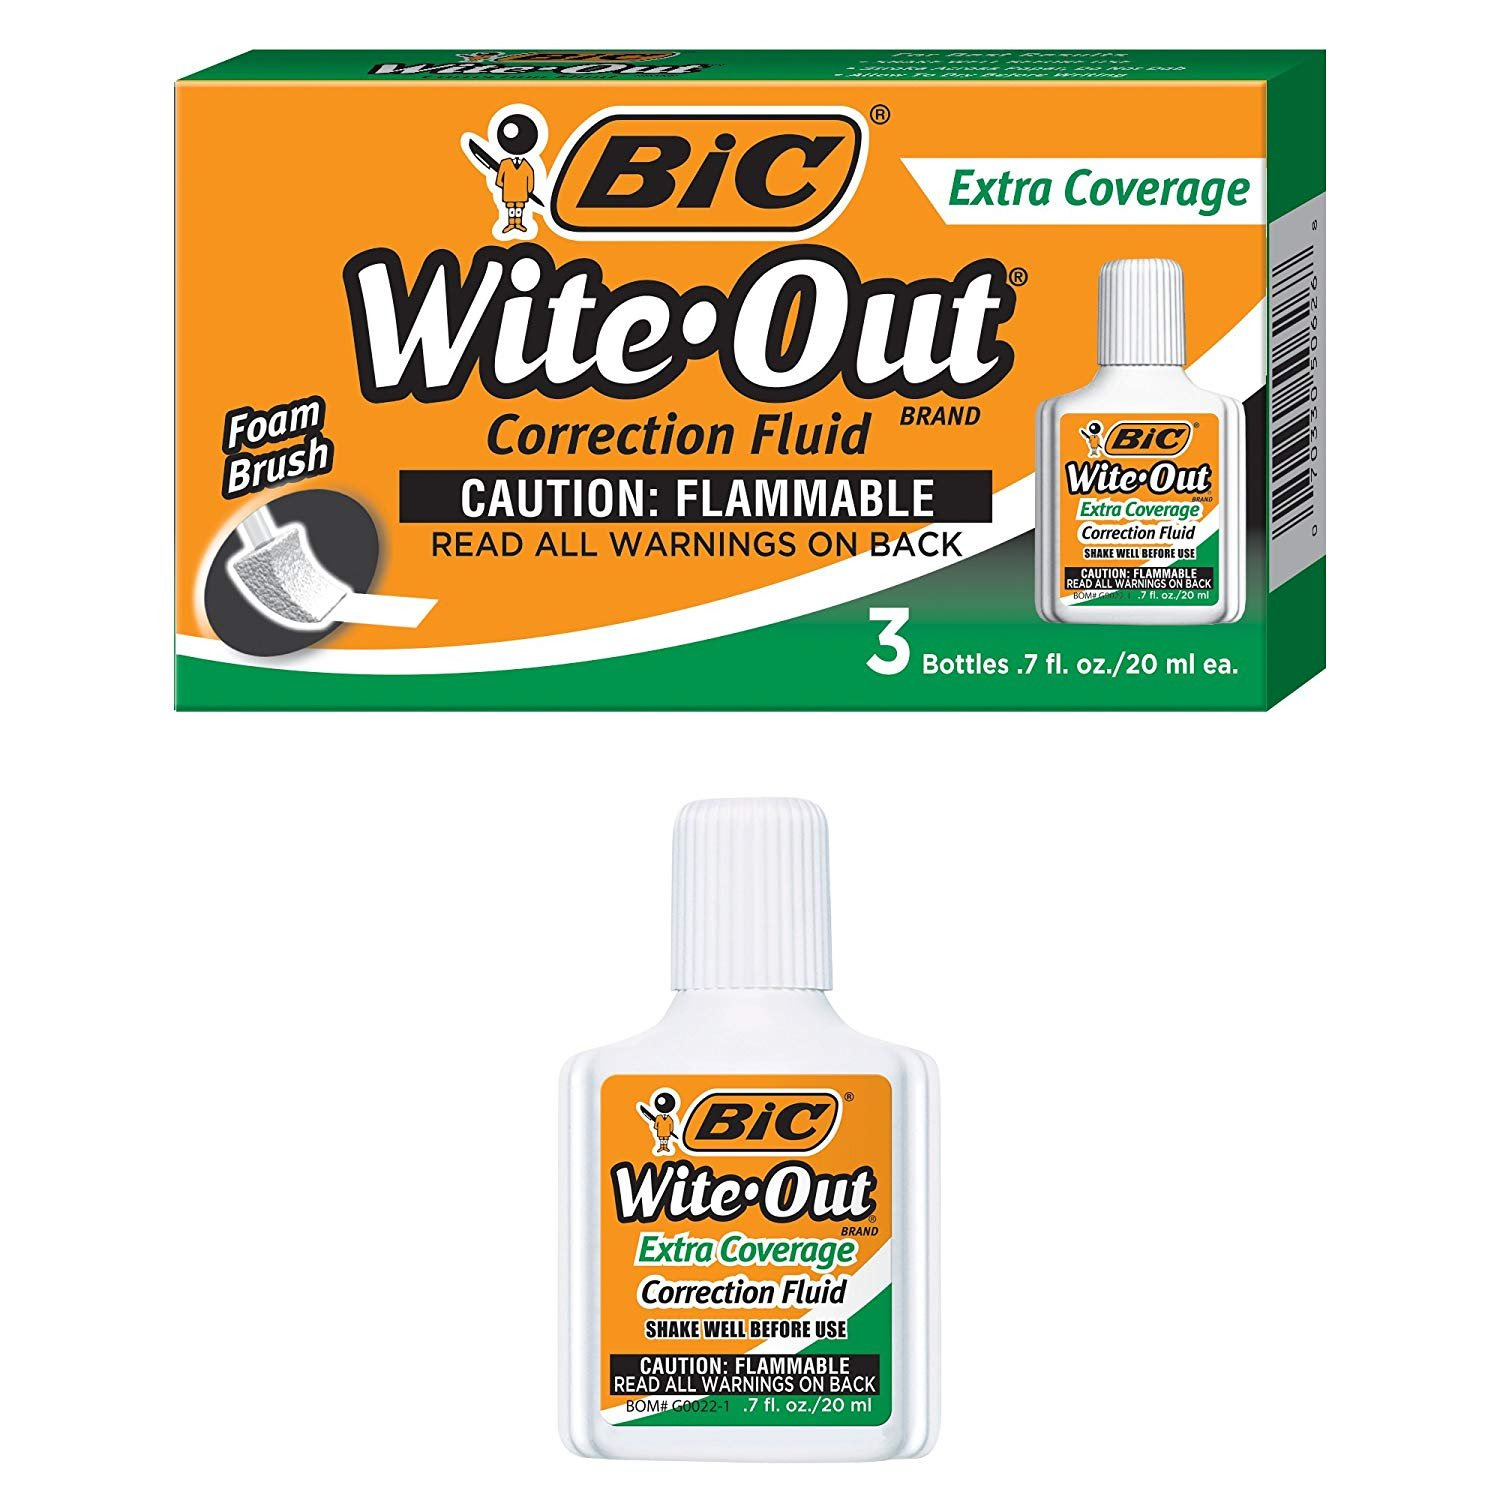 BIC Wite Out Extra Coverage Correction Fluid-.7oz -3 Pack by BIC (Image #1)